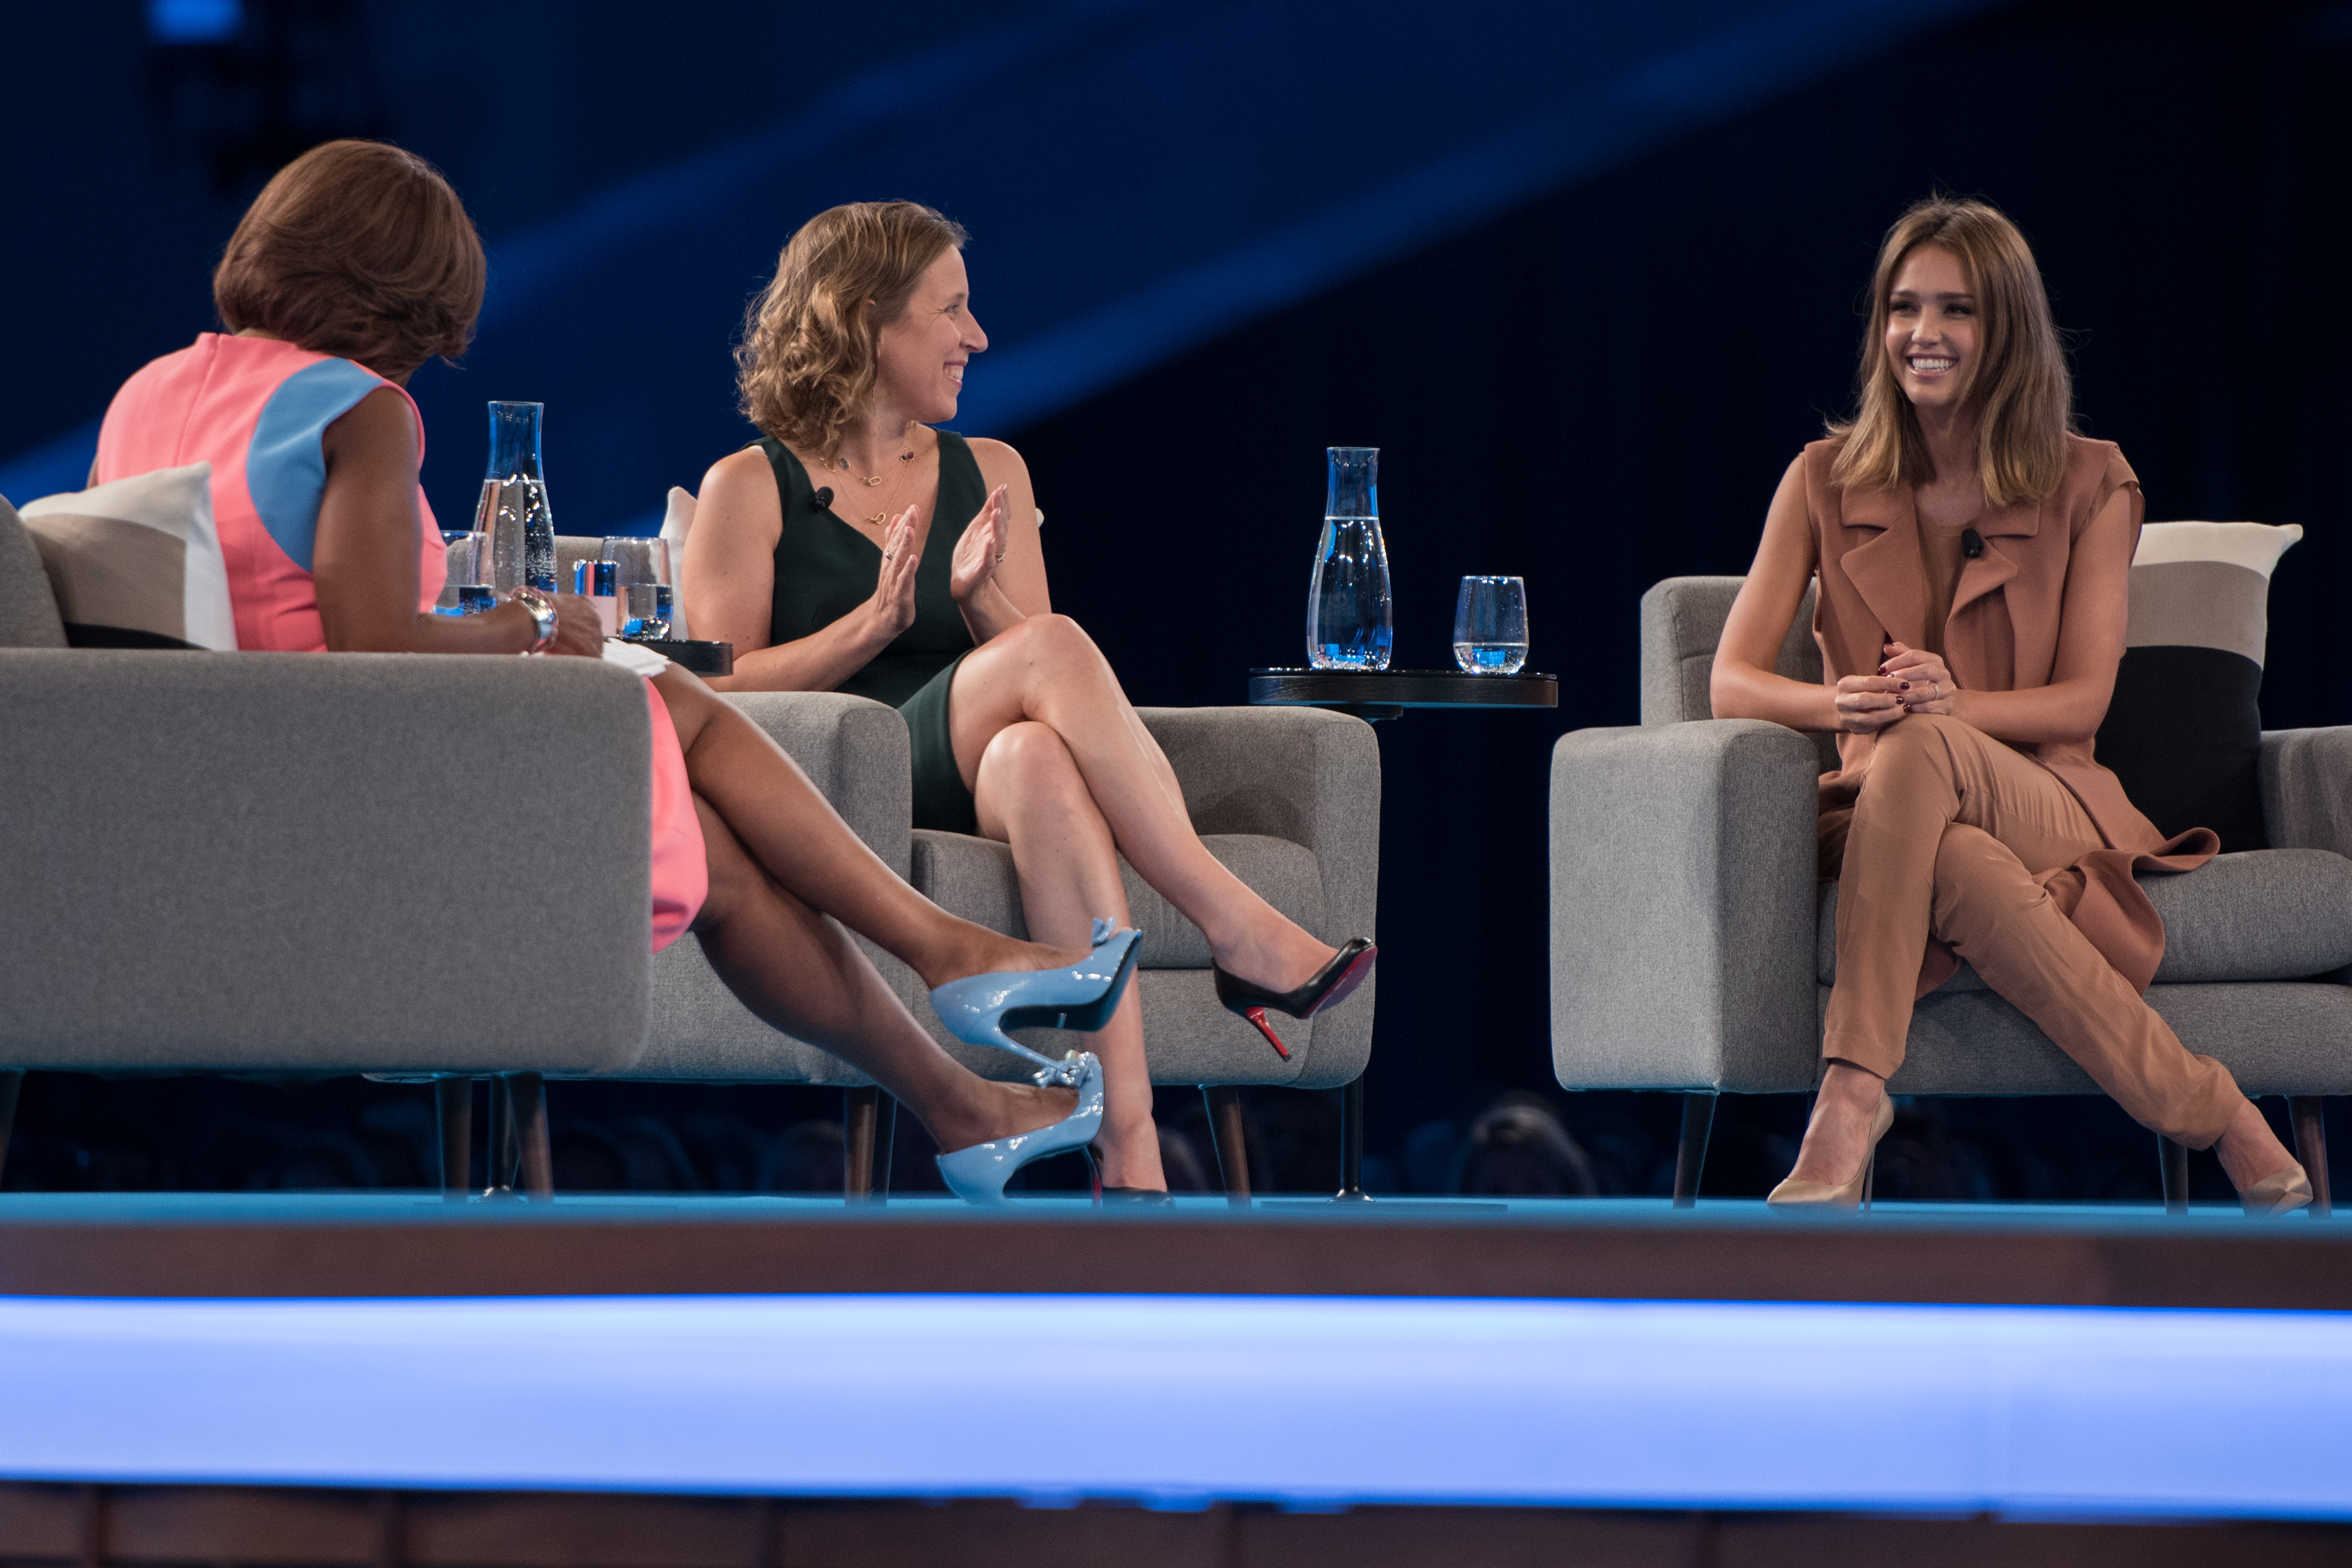 Dreamforce's 'Women's Innovation' panel is why we should stop babying female CEOs